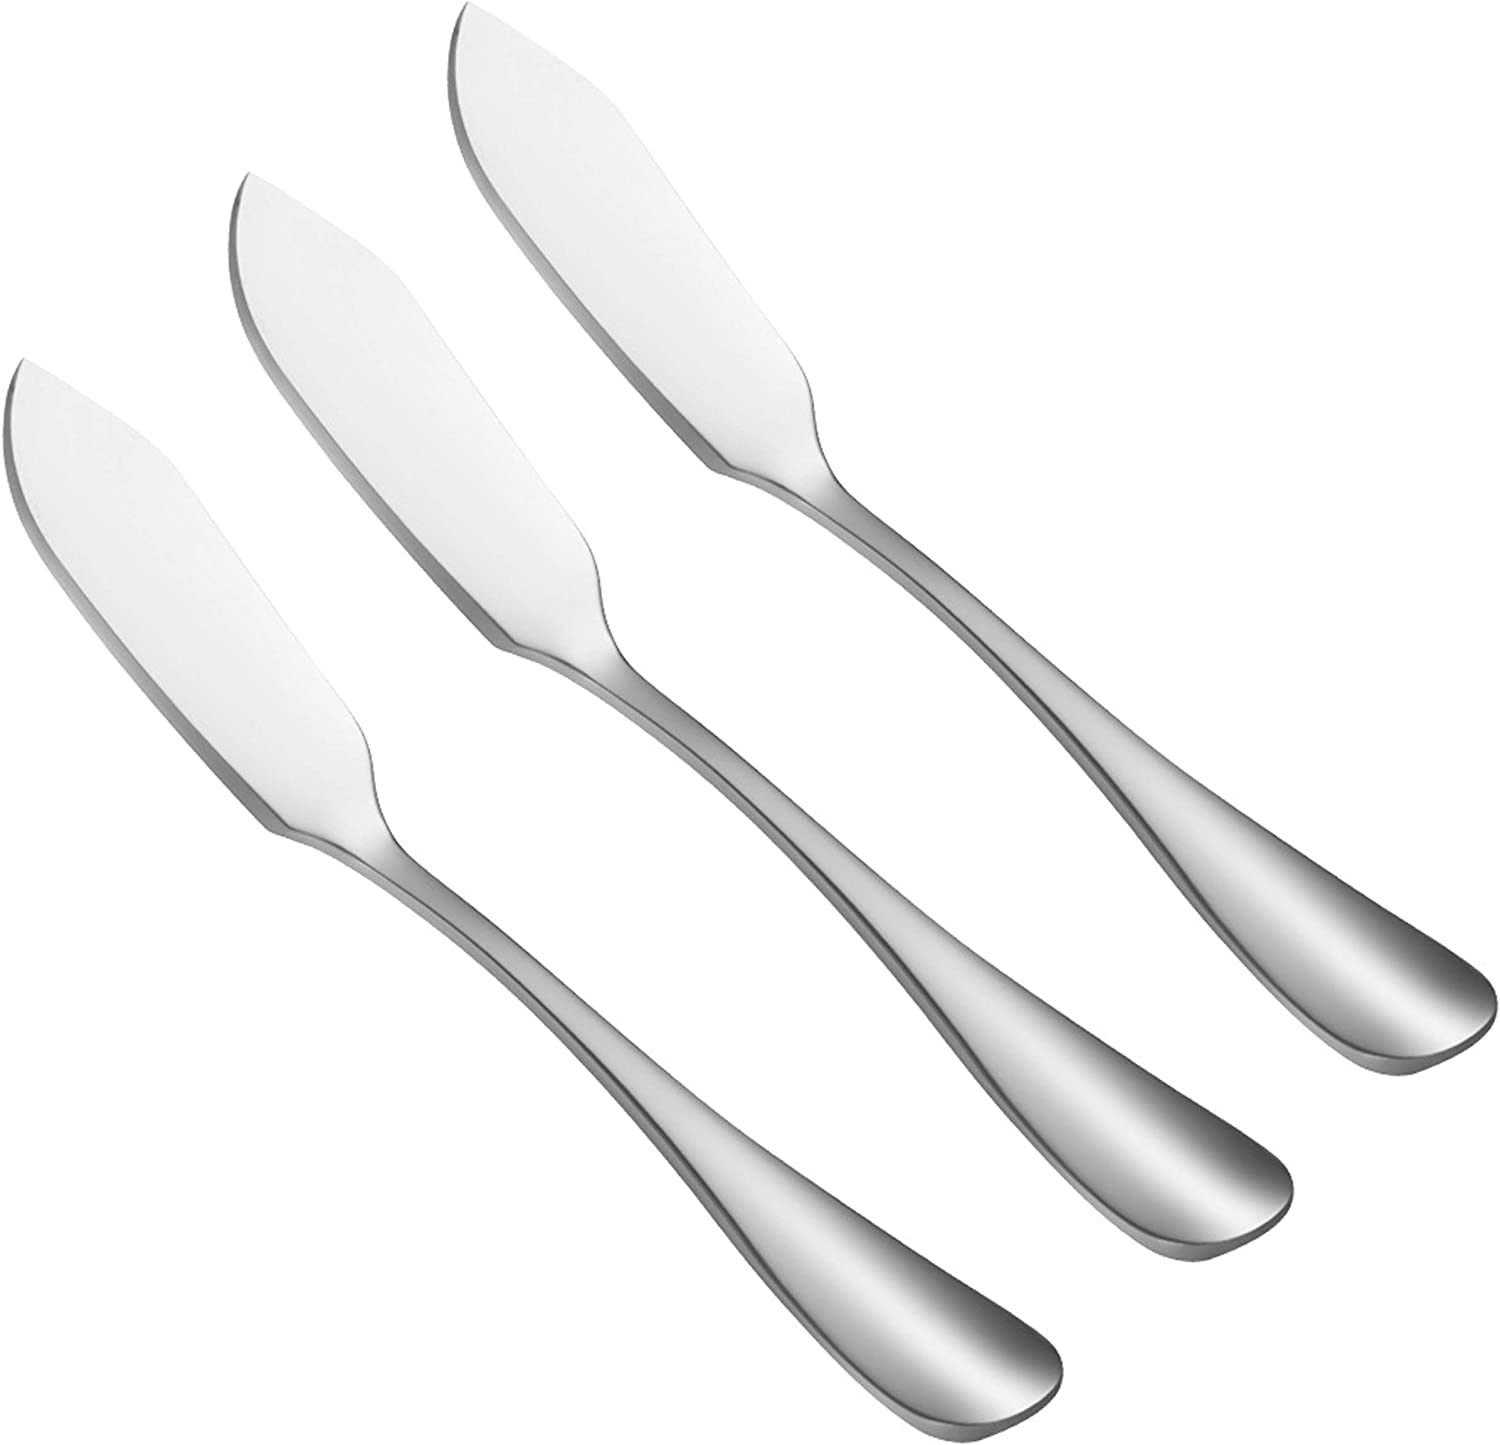 KISTVO Set of 3 Stainless Spreader Steel Knife Surprise price Challenge the lowest price of Japan ☆ Butter Practical